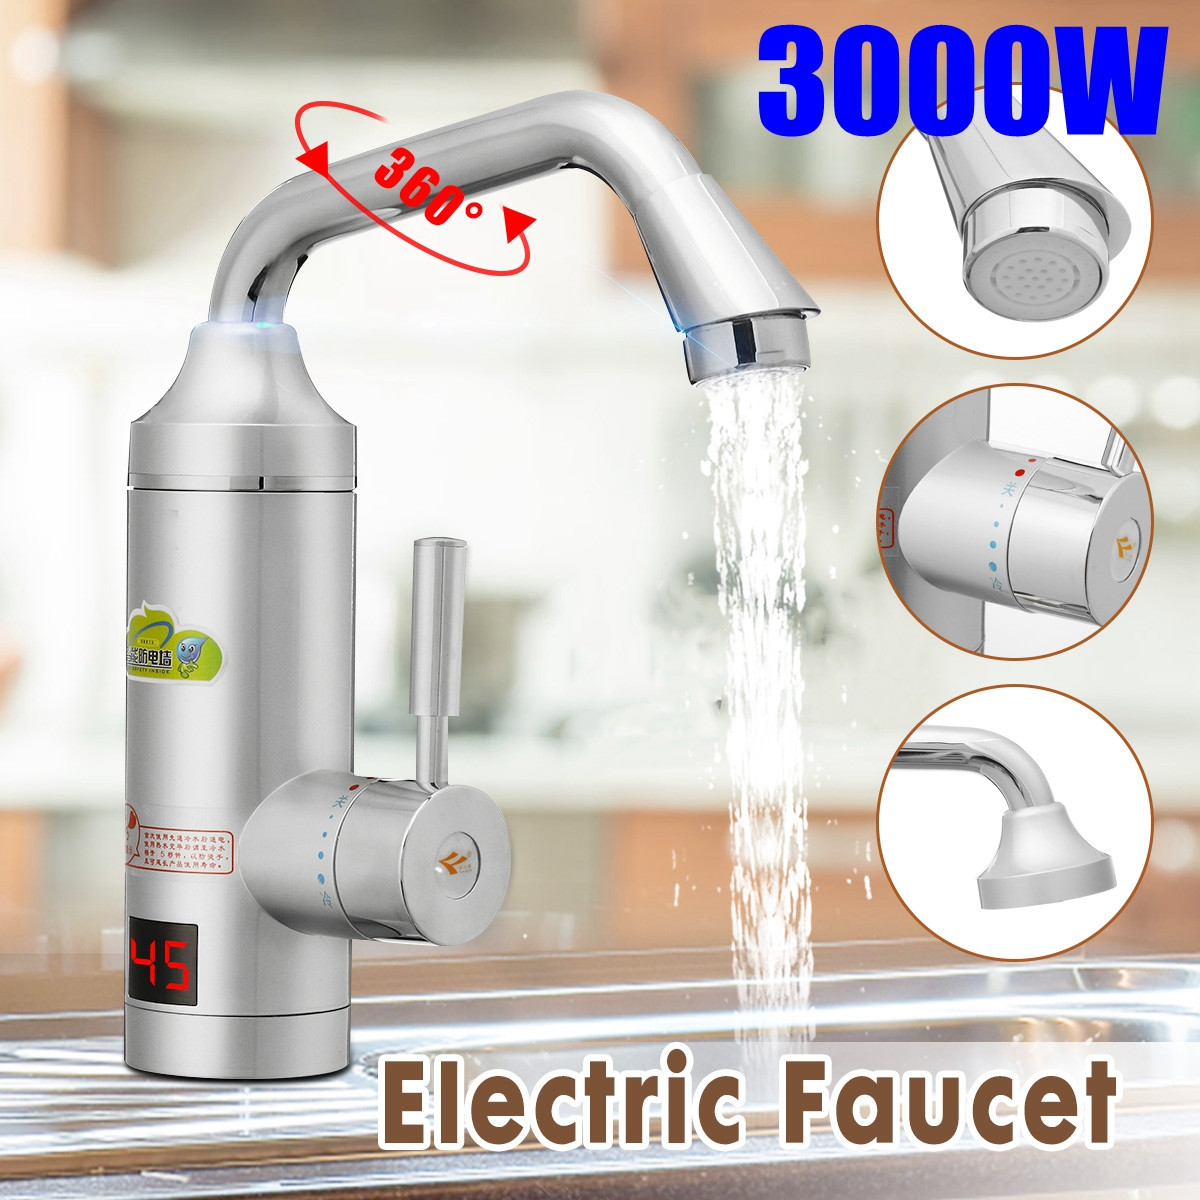 220V-250V 3000W Electric Kitchen Water Heater Tap Instant Hot Water Faucet Heater Cold Heating Faucet Instantaneous Water Heater